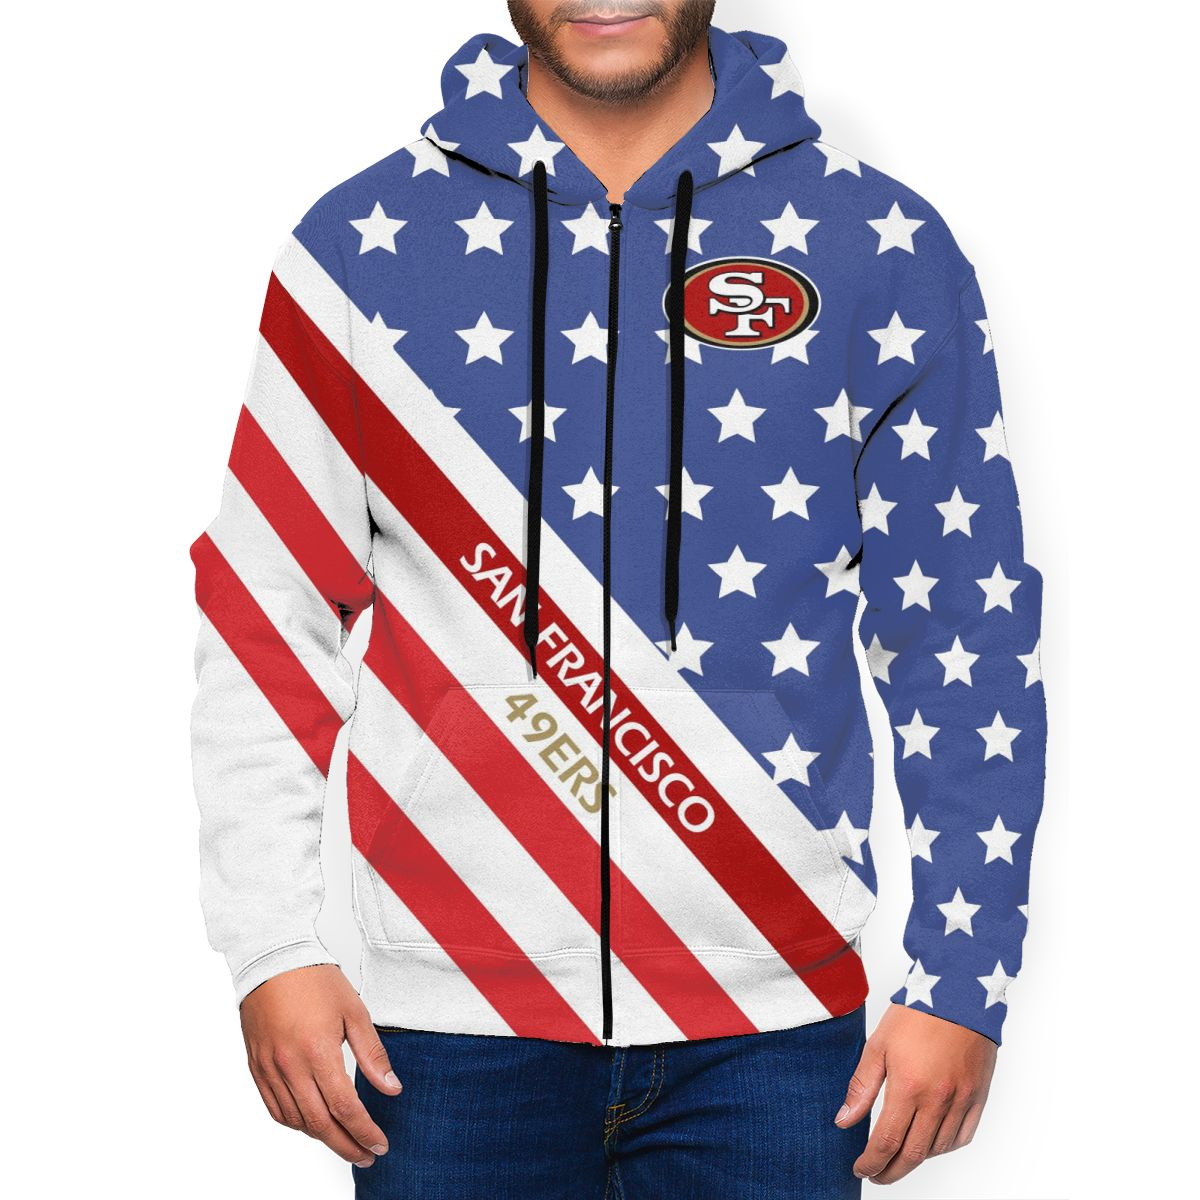 49ers Men's Zip Hooded Sweatshirt